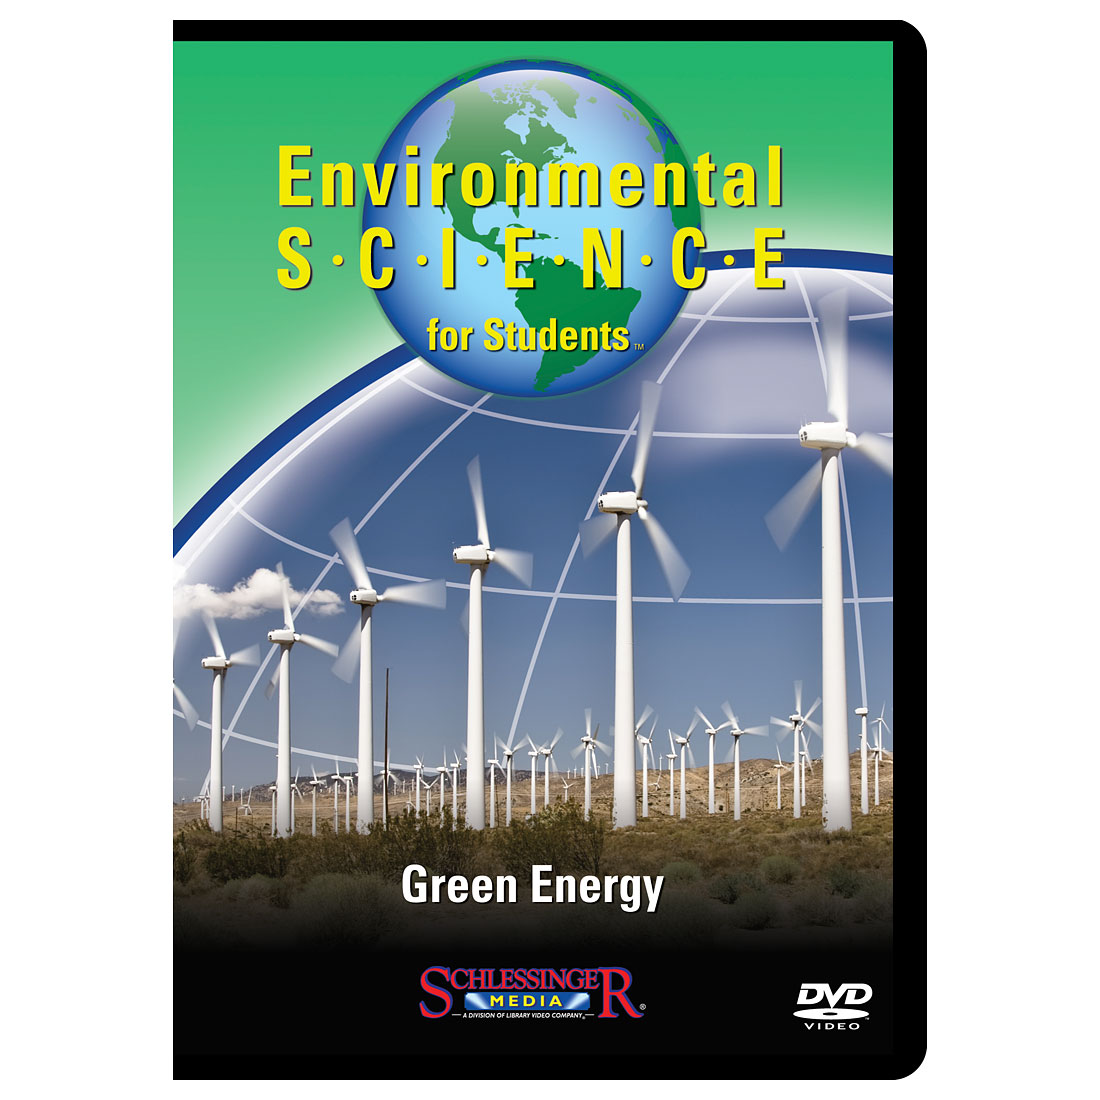 green productivity for sustainable energy and environment Green productivity_an essence of sustainable development - download as pdf file (pdf), text file (txt) or read online green productivity and sustainable development.